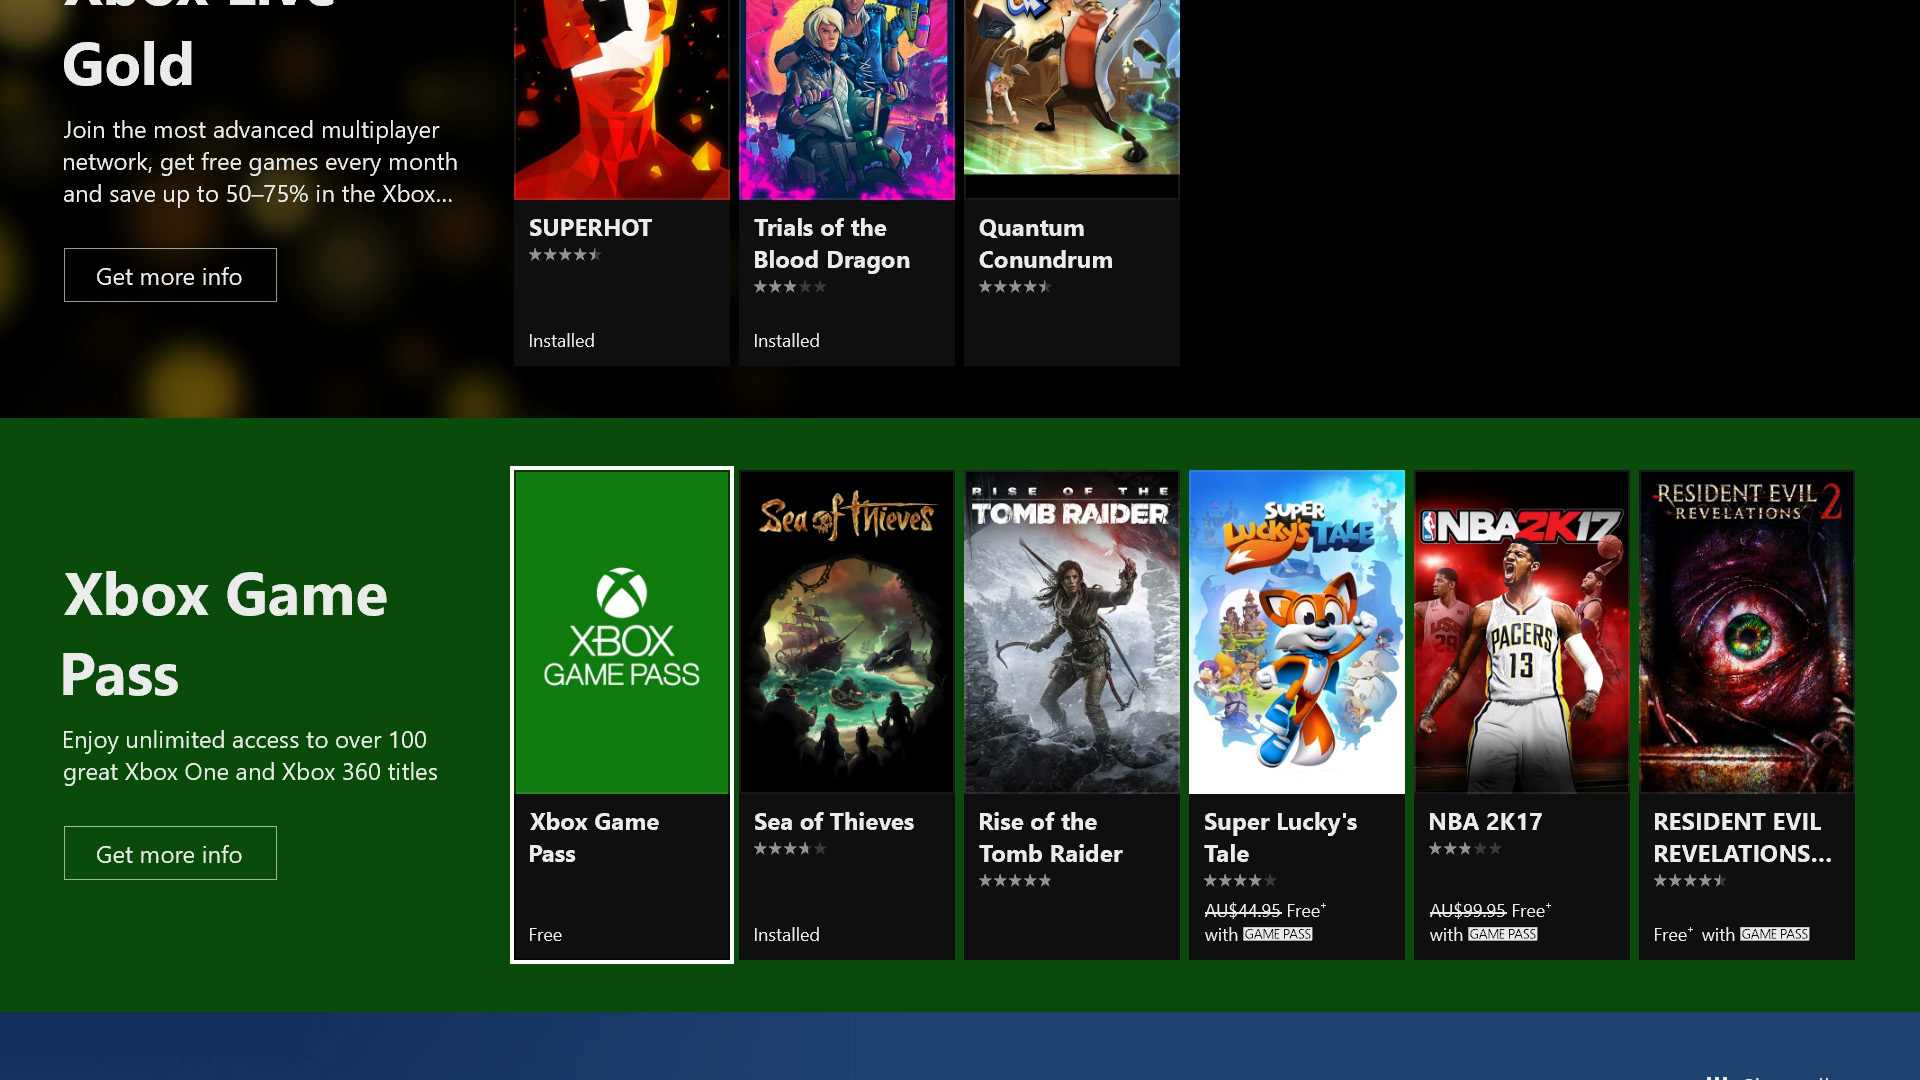 How To Xbox 360 Games On Xbox One With Gift Card - Gift Ideas